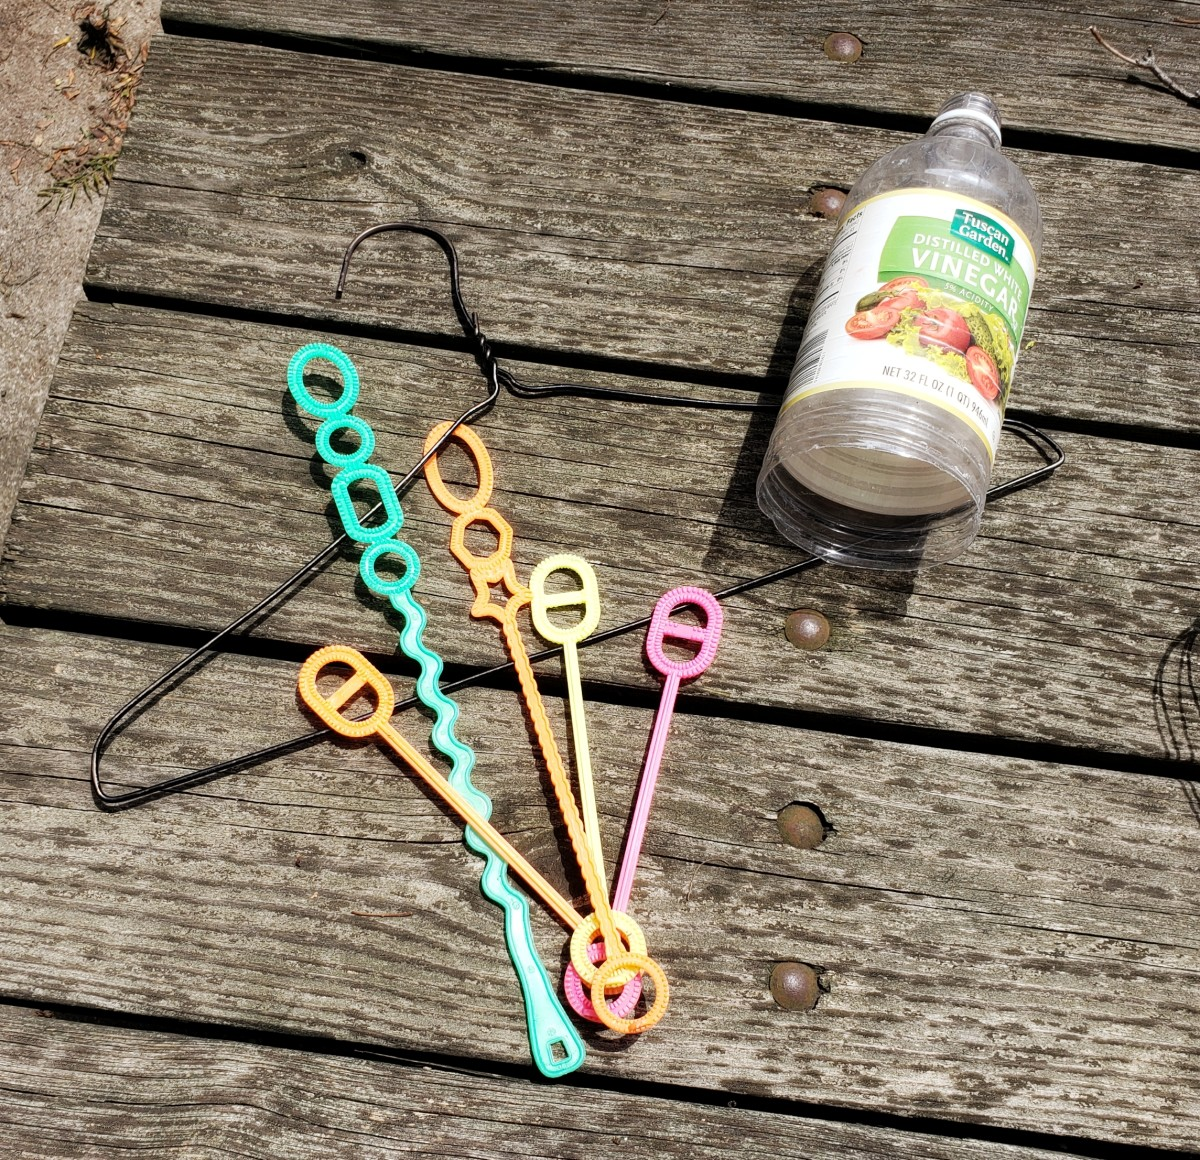 Get creative and experiment with different materials for wands. An old plastic bottle will make large circular bubbles. Try a wire coat hanger for a challenge!